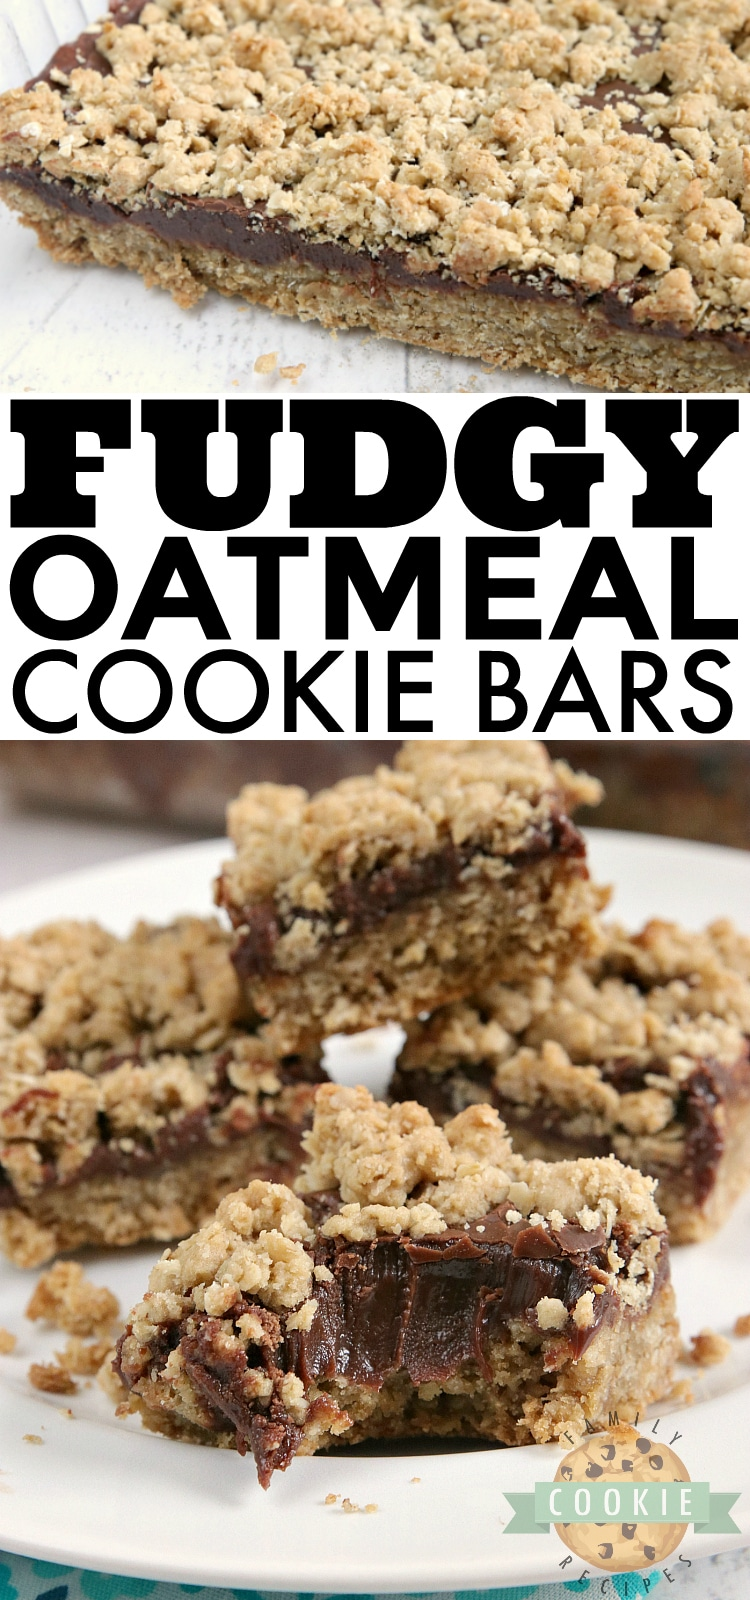 Fudgy Oatmeal Cookie Bars are made with a thick chocolate ganache in between two layers of a soft and chewy oatmeal cookie recipe. This cookie bar recipe is absolutely amazing!